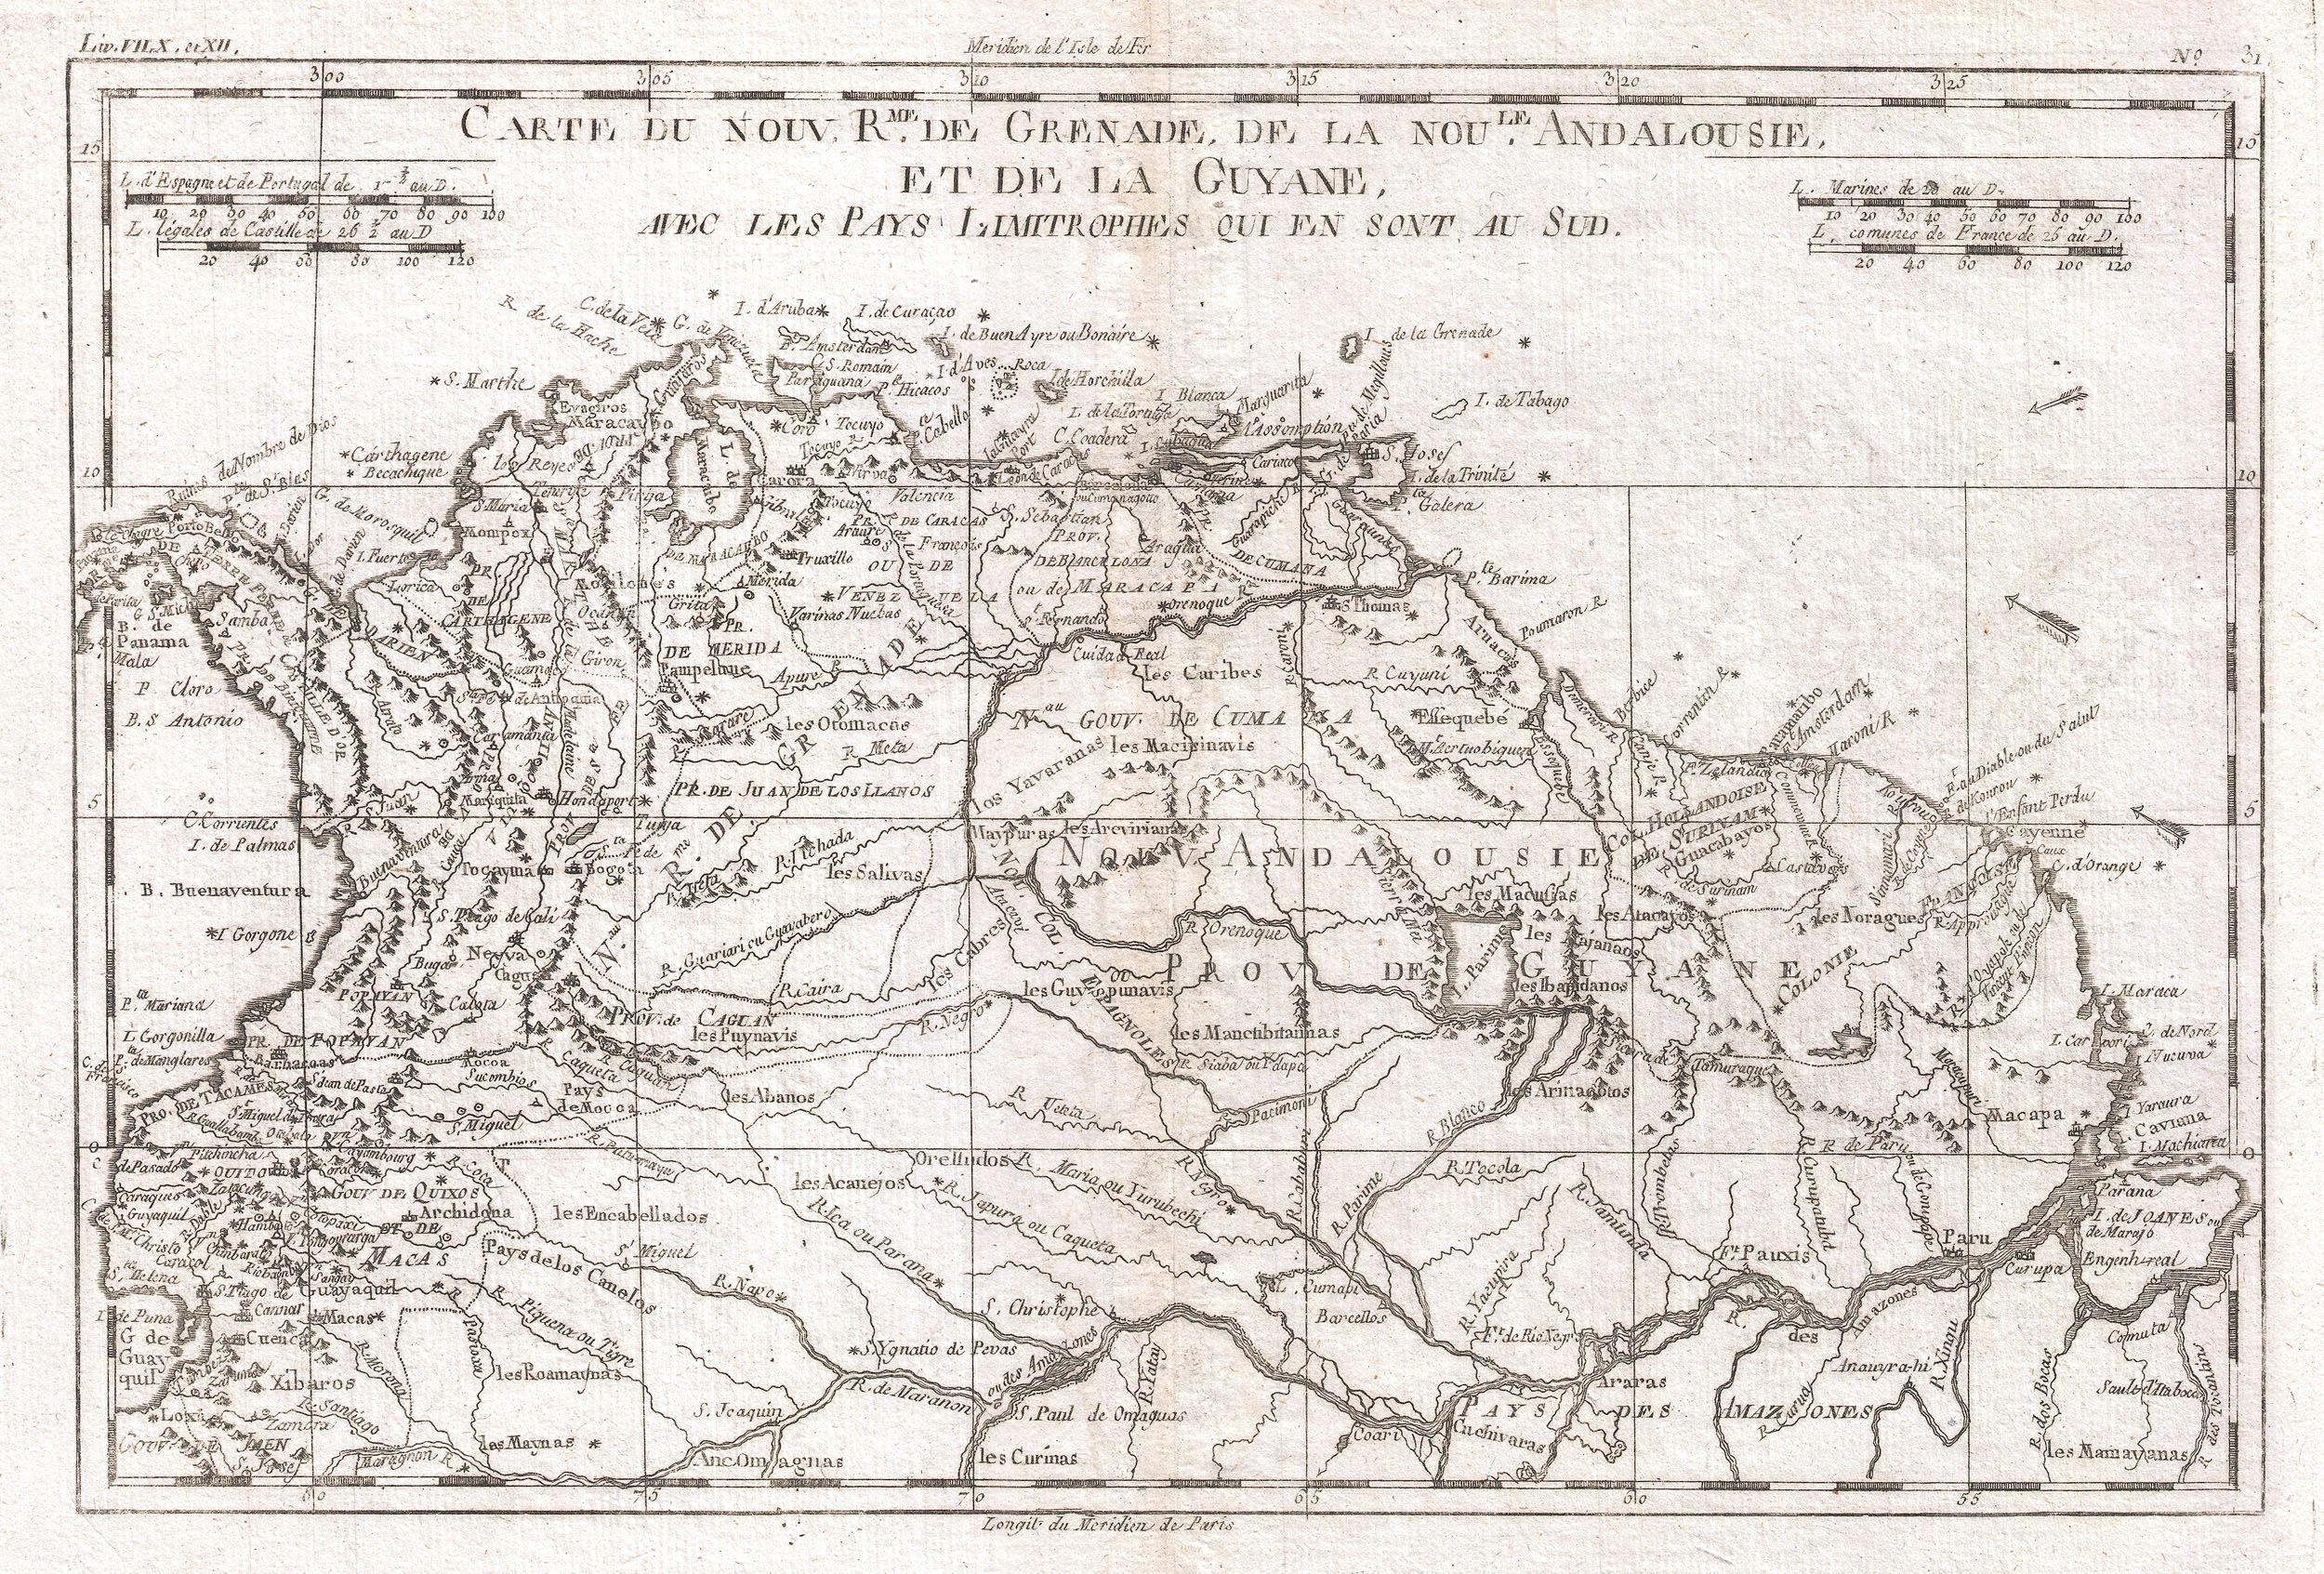 File:1780 Raynal and Bonne Map of Northern South America ... on major rivers in south america, map of northern ca wine country, map of northern east coast usa, map of north america natural resources, topography of northern south america, northern part of south america, map of north america without labels, map of latin america, map of northern lebanon, map of the northern america, political map of america, map of northern fiji, map of northern adriatic, map of northern ukraine, map of eastern north america, map of northern jordan, map of central america, map of northern south carolina, map of northern european rivers, map of northern wisconsin,